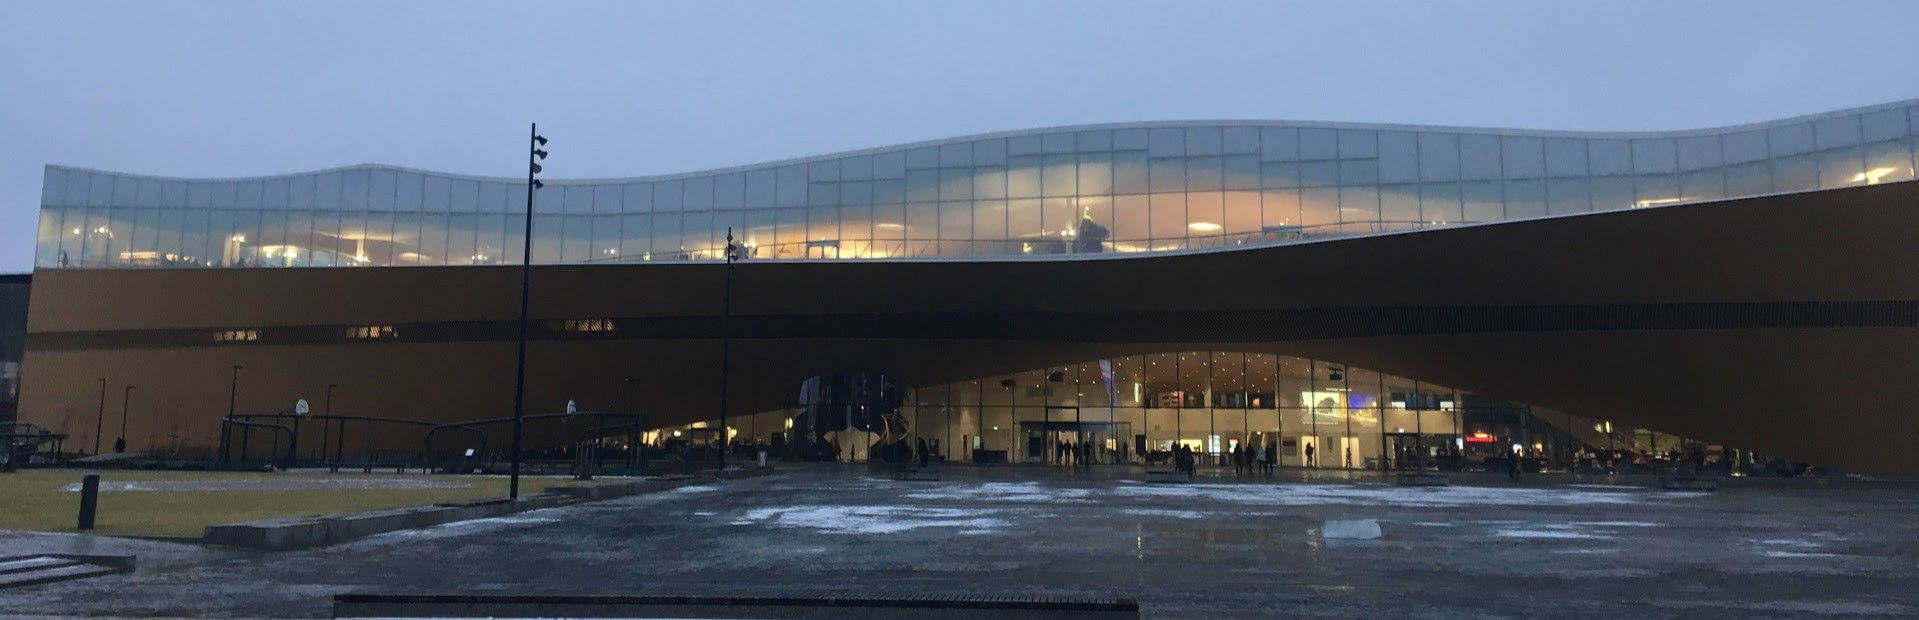 The New Helsinki Library / Space Ship